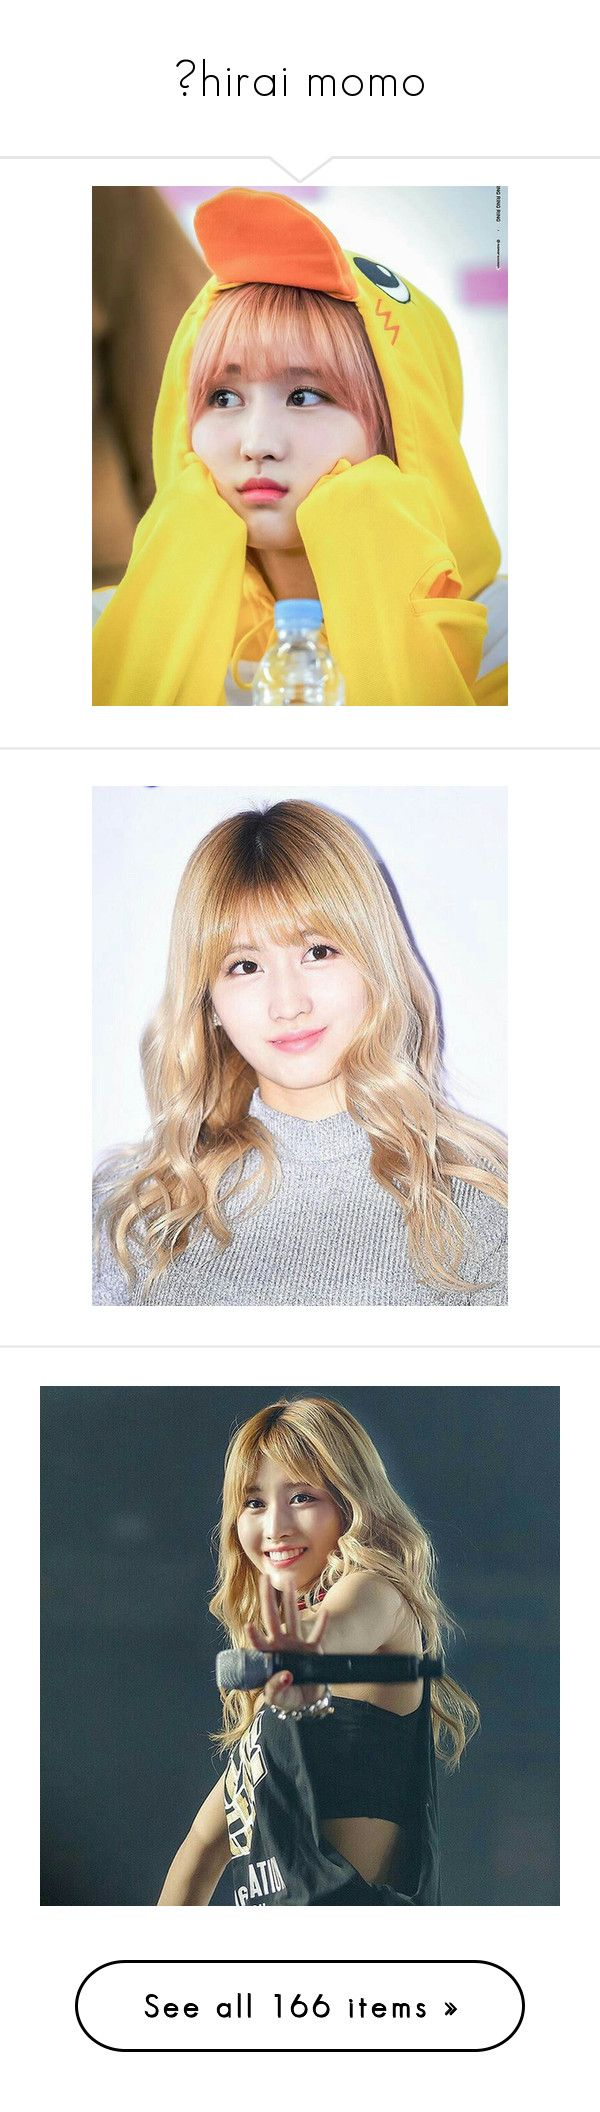 """""""⚫hirai momo"""" by housexofxcards ❤ liked on Polyvore featuring kpop, costumes, hirai momo and momo"""